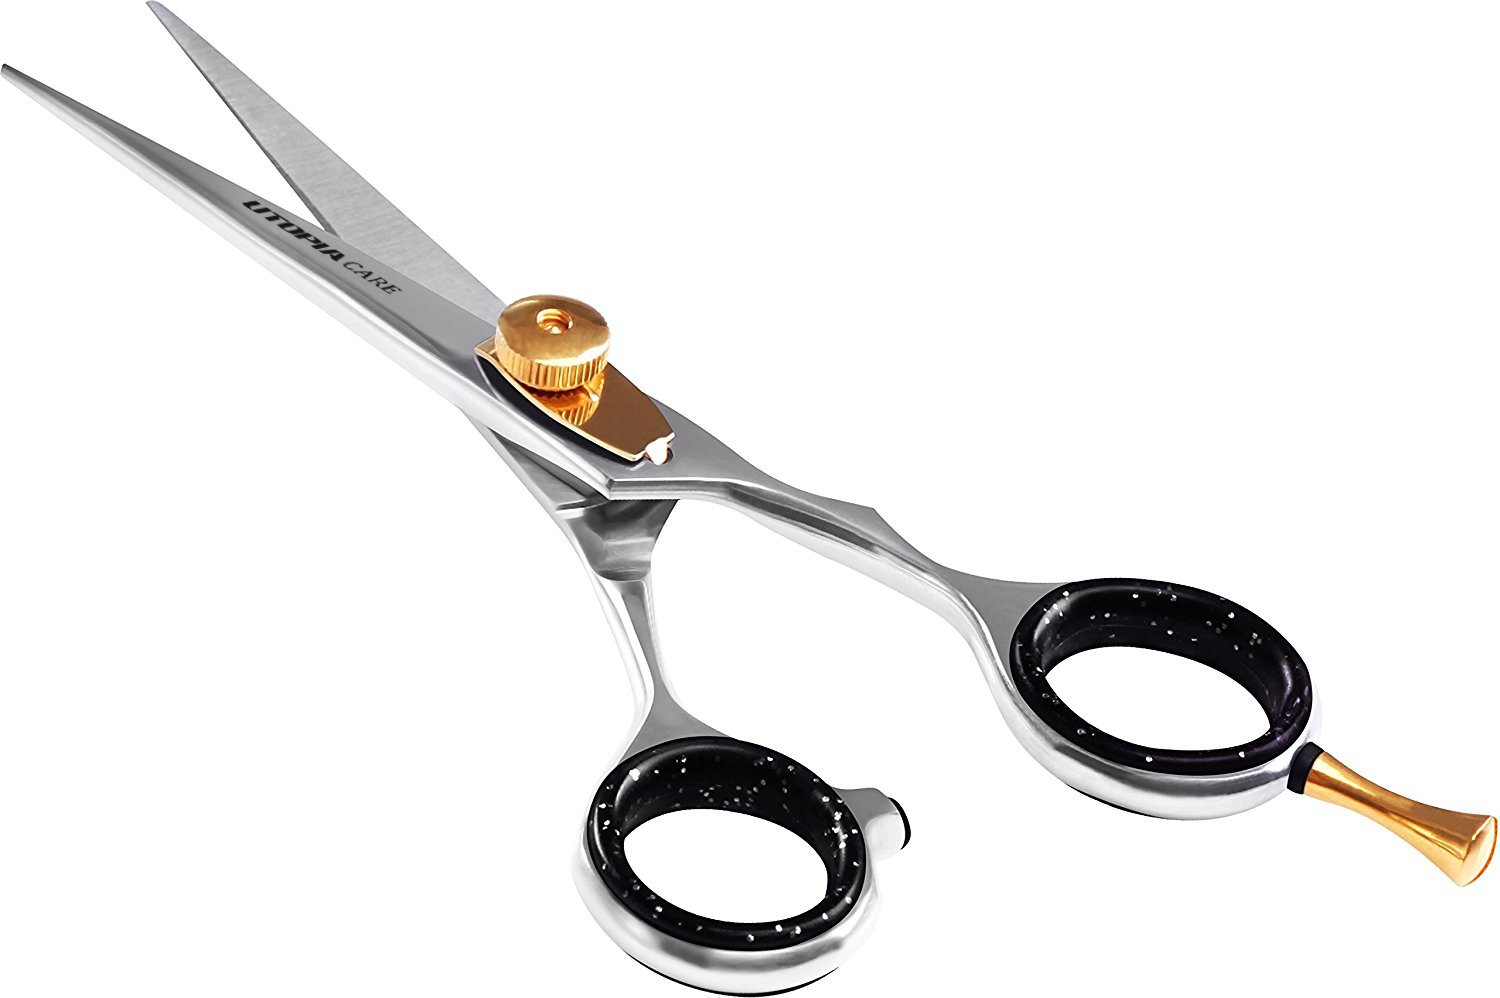 Professional Barber/Salon Razor Edge Hair Cutting Scissors/Shears (11 ½  Inch, Forged) with Fine Adjustable Tension Screw - Detachable Finger Rest -